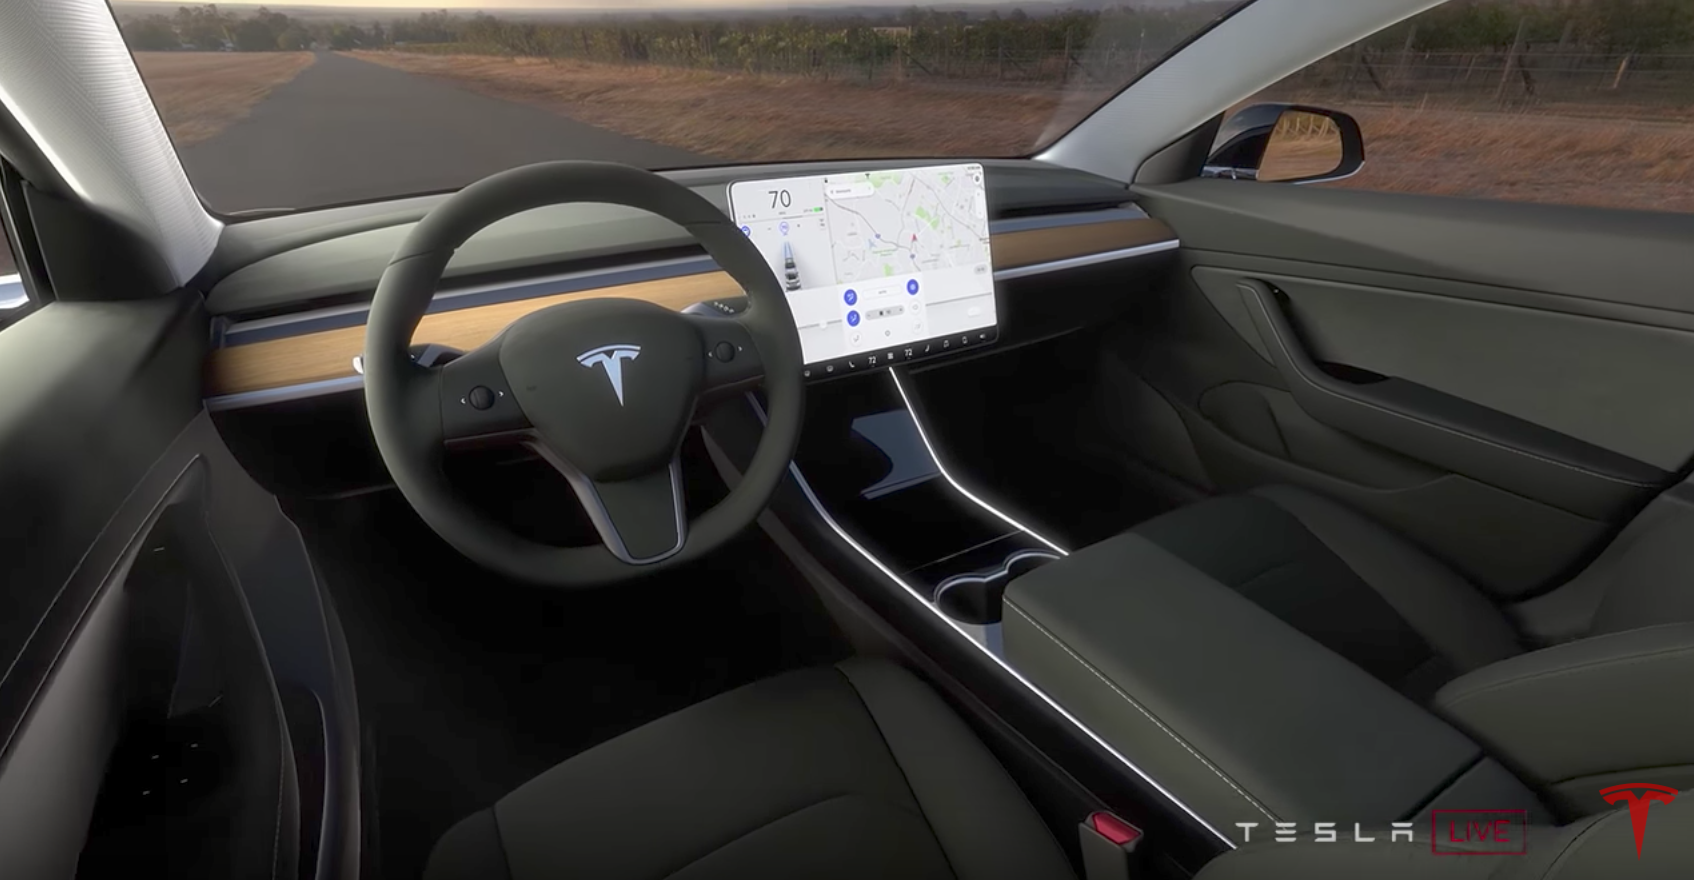 tesla model 3 minimalism vs buttons stuff cleantechnica. Black Bedroom Furniture Sets. Home Design Ideas